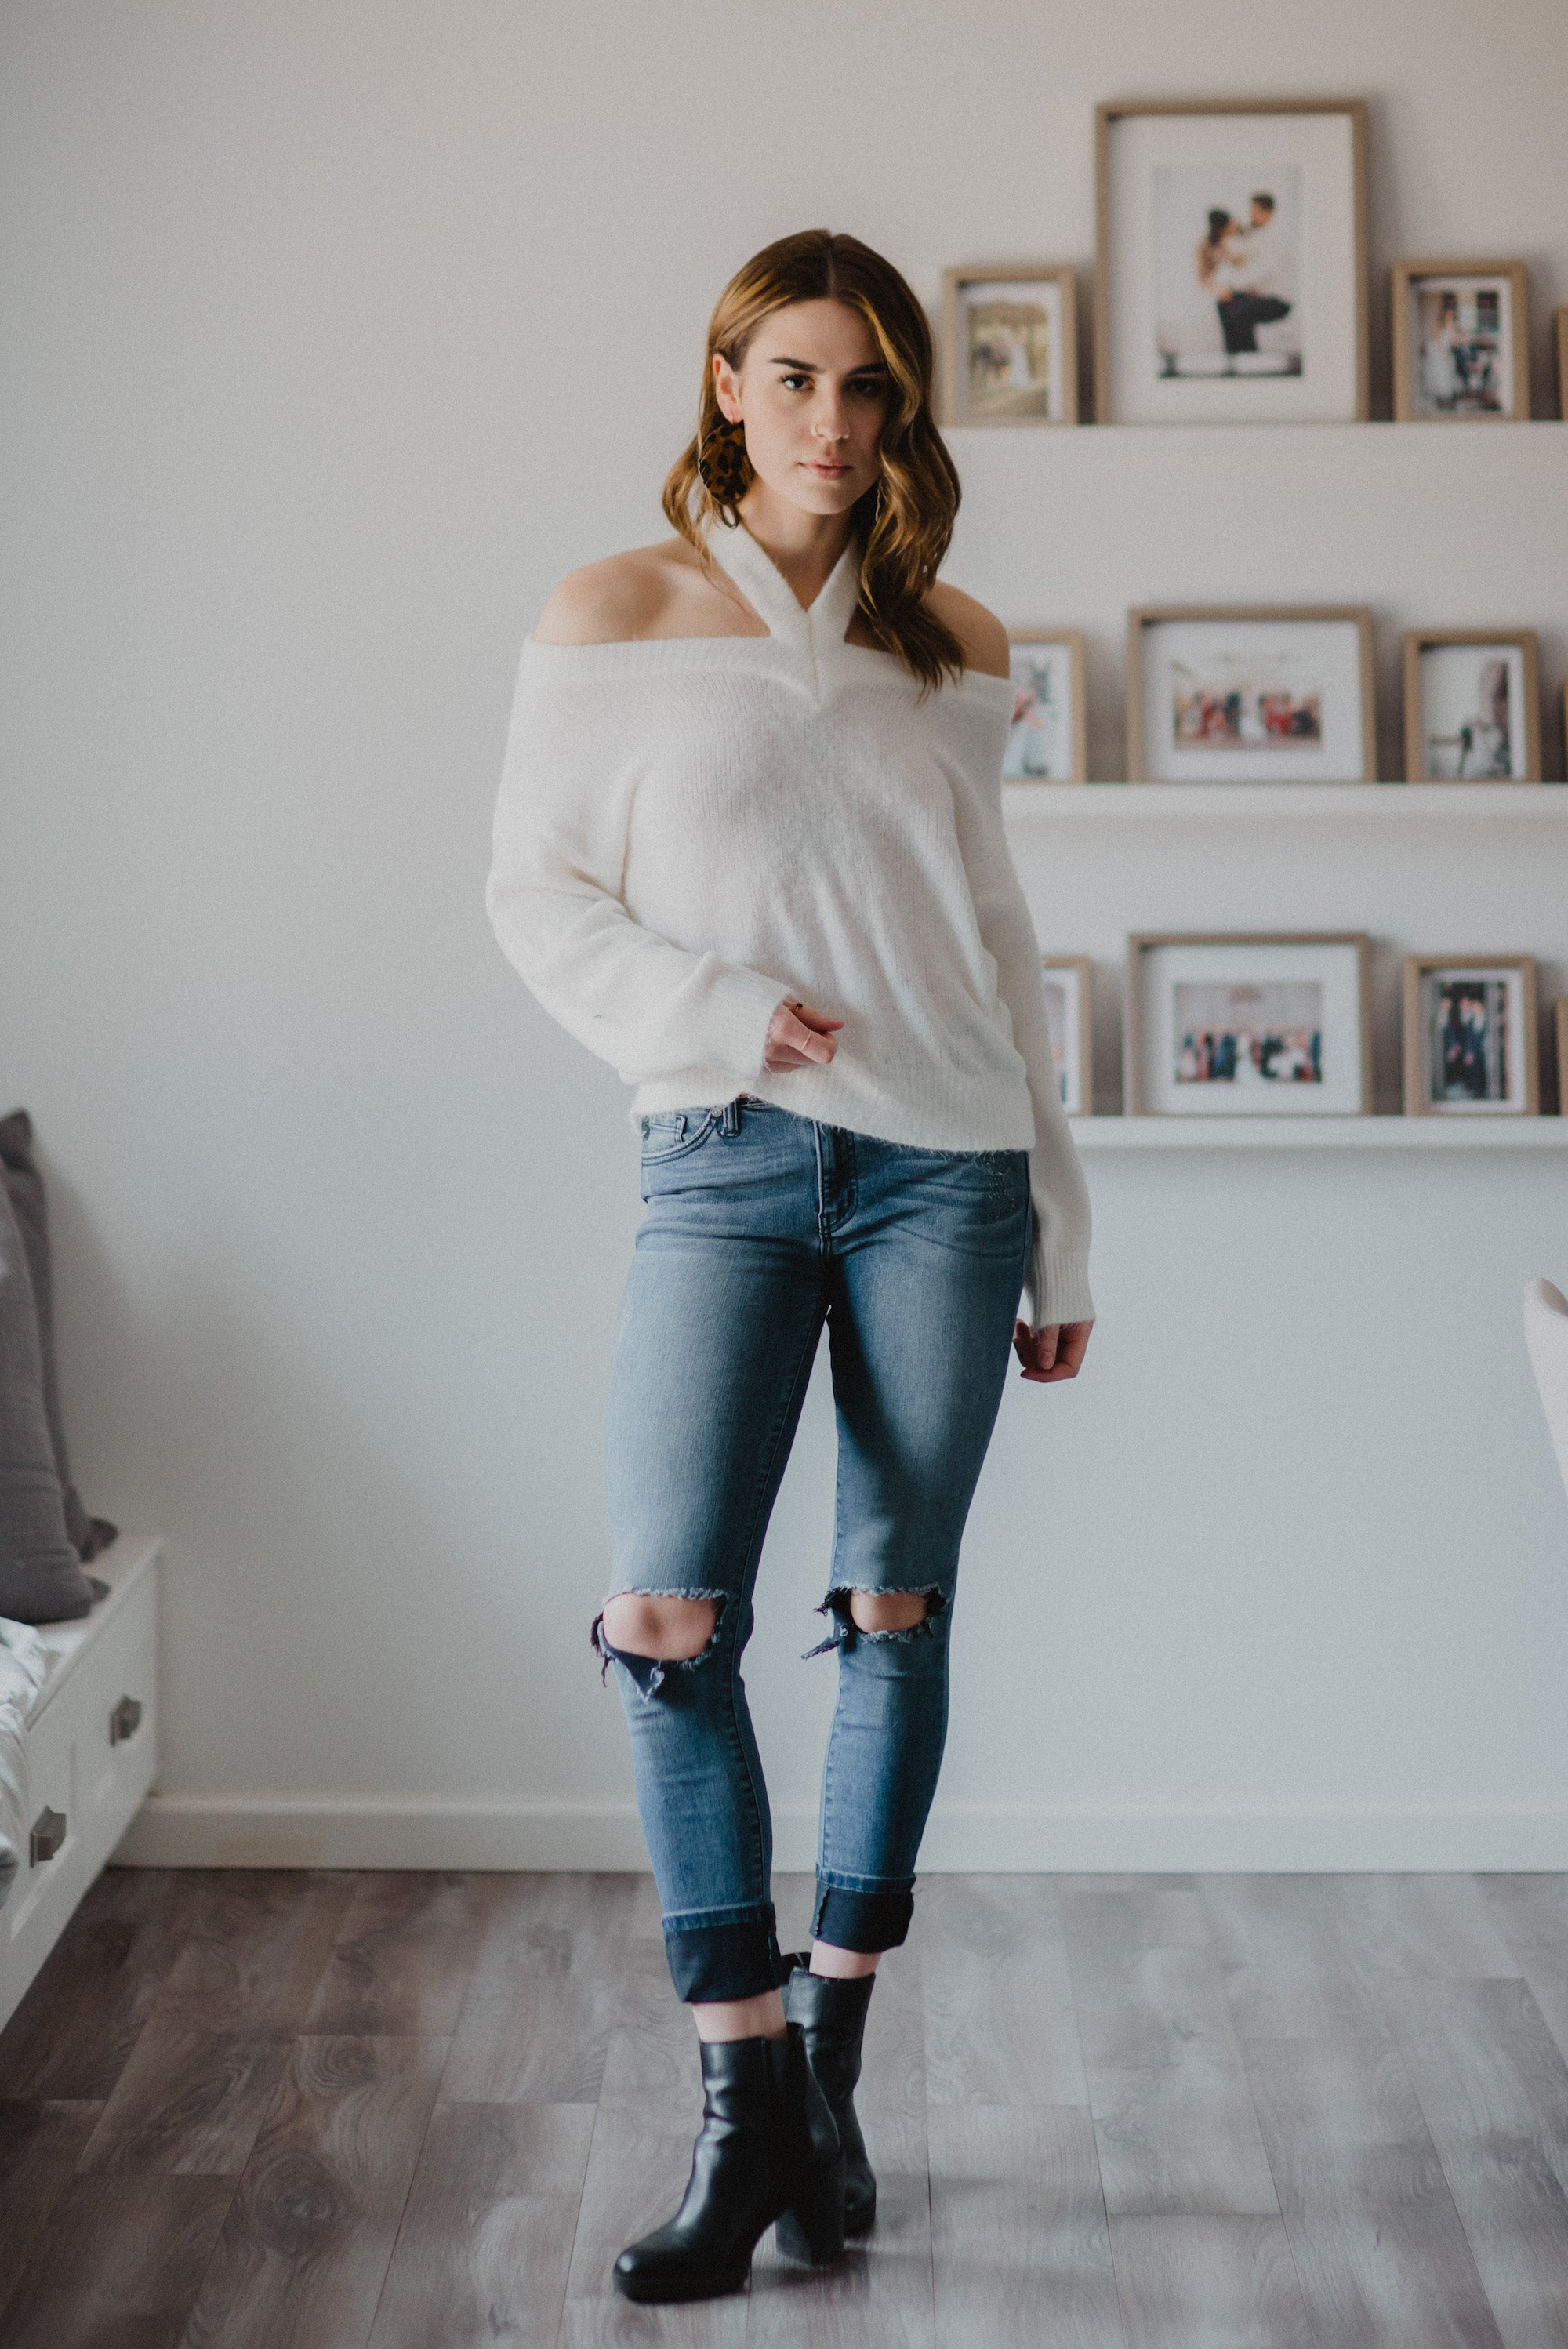 Winter White Off the Shoulder Sweater